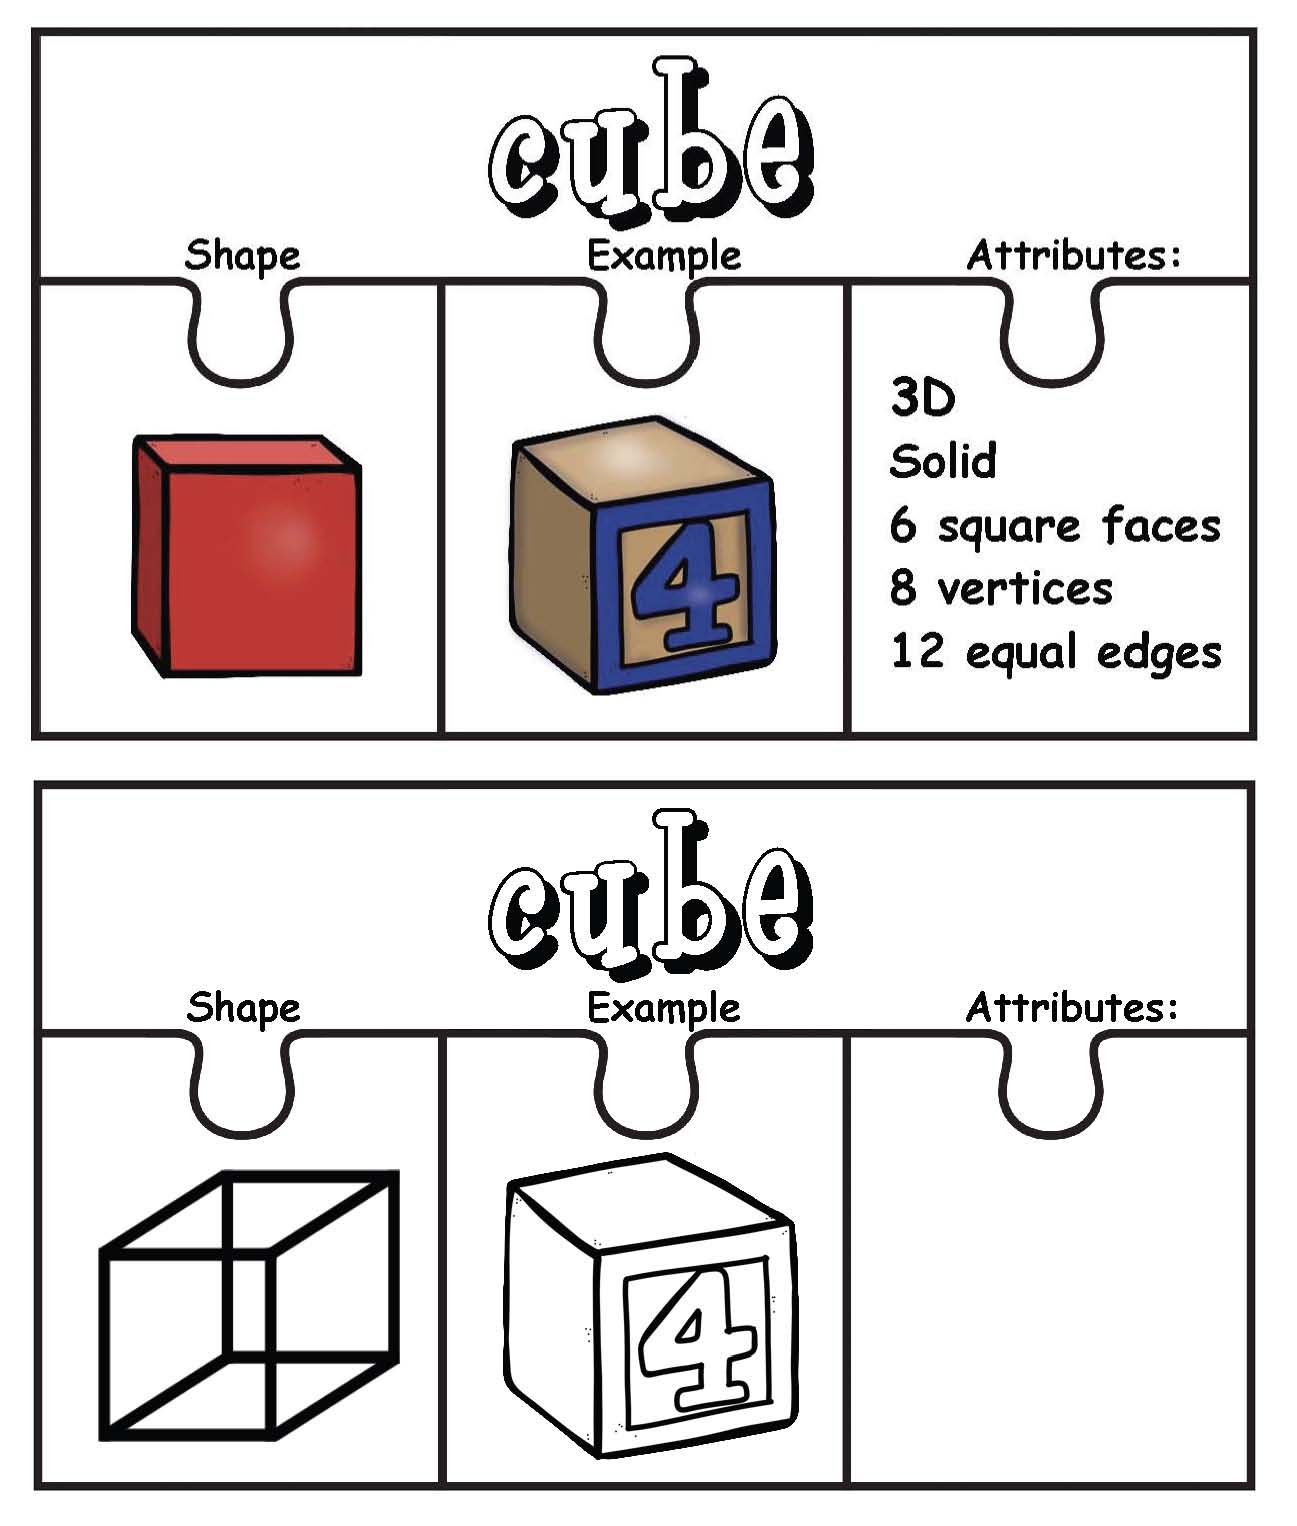 I've also included black and white templates so that students can make their own puzzles.